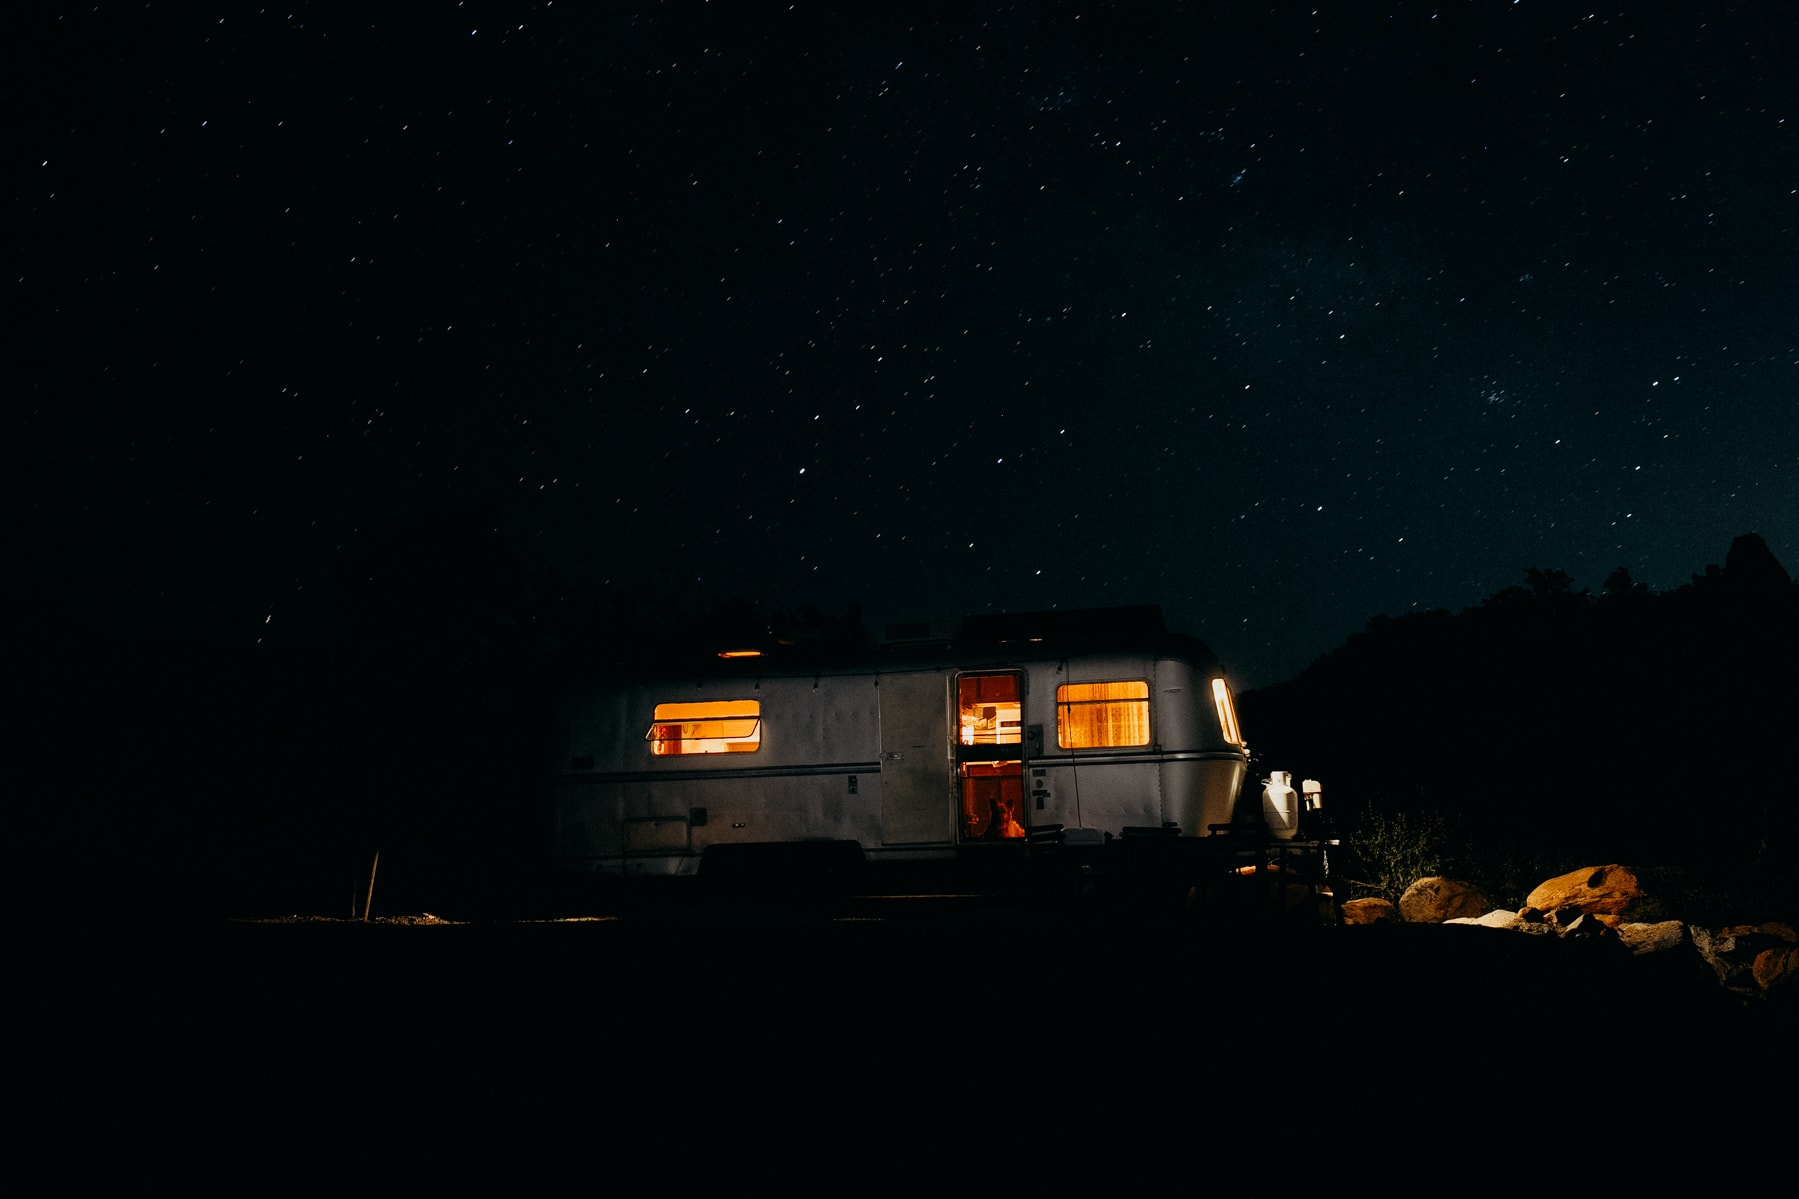 trailer at night with starry skies